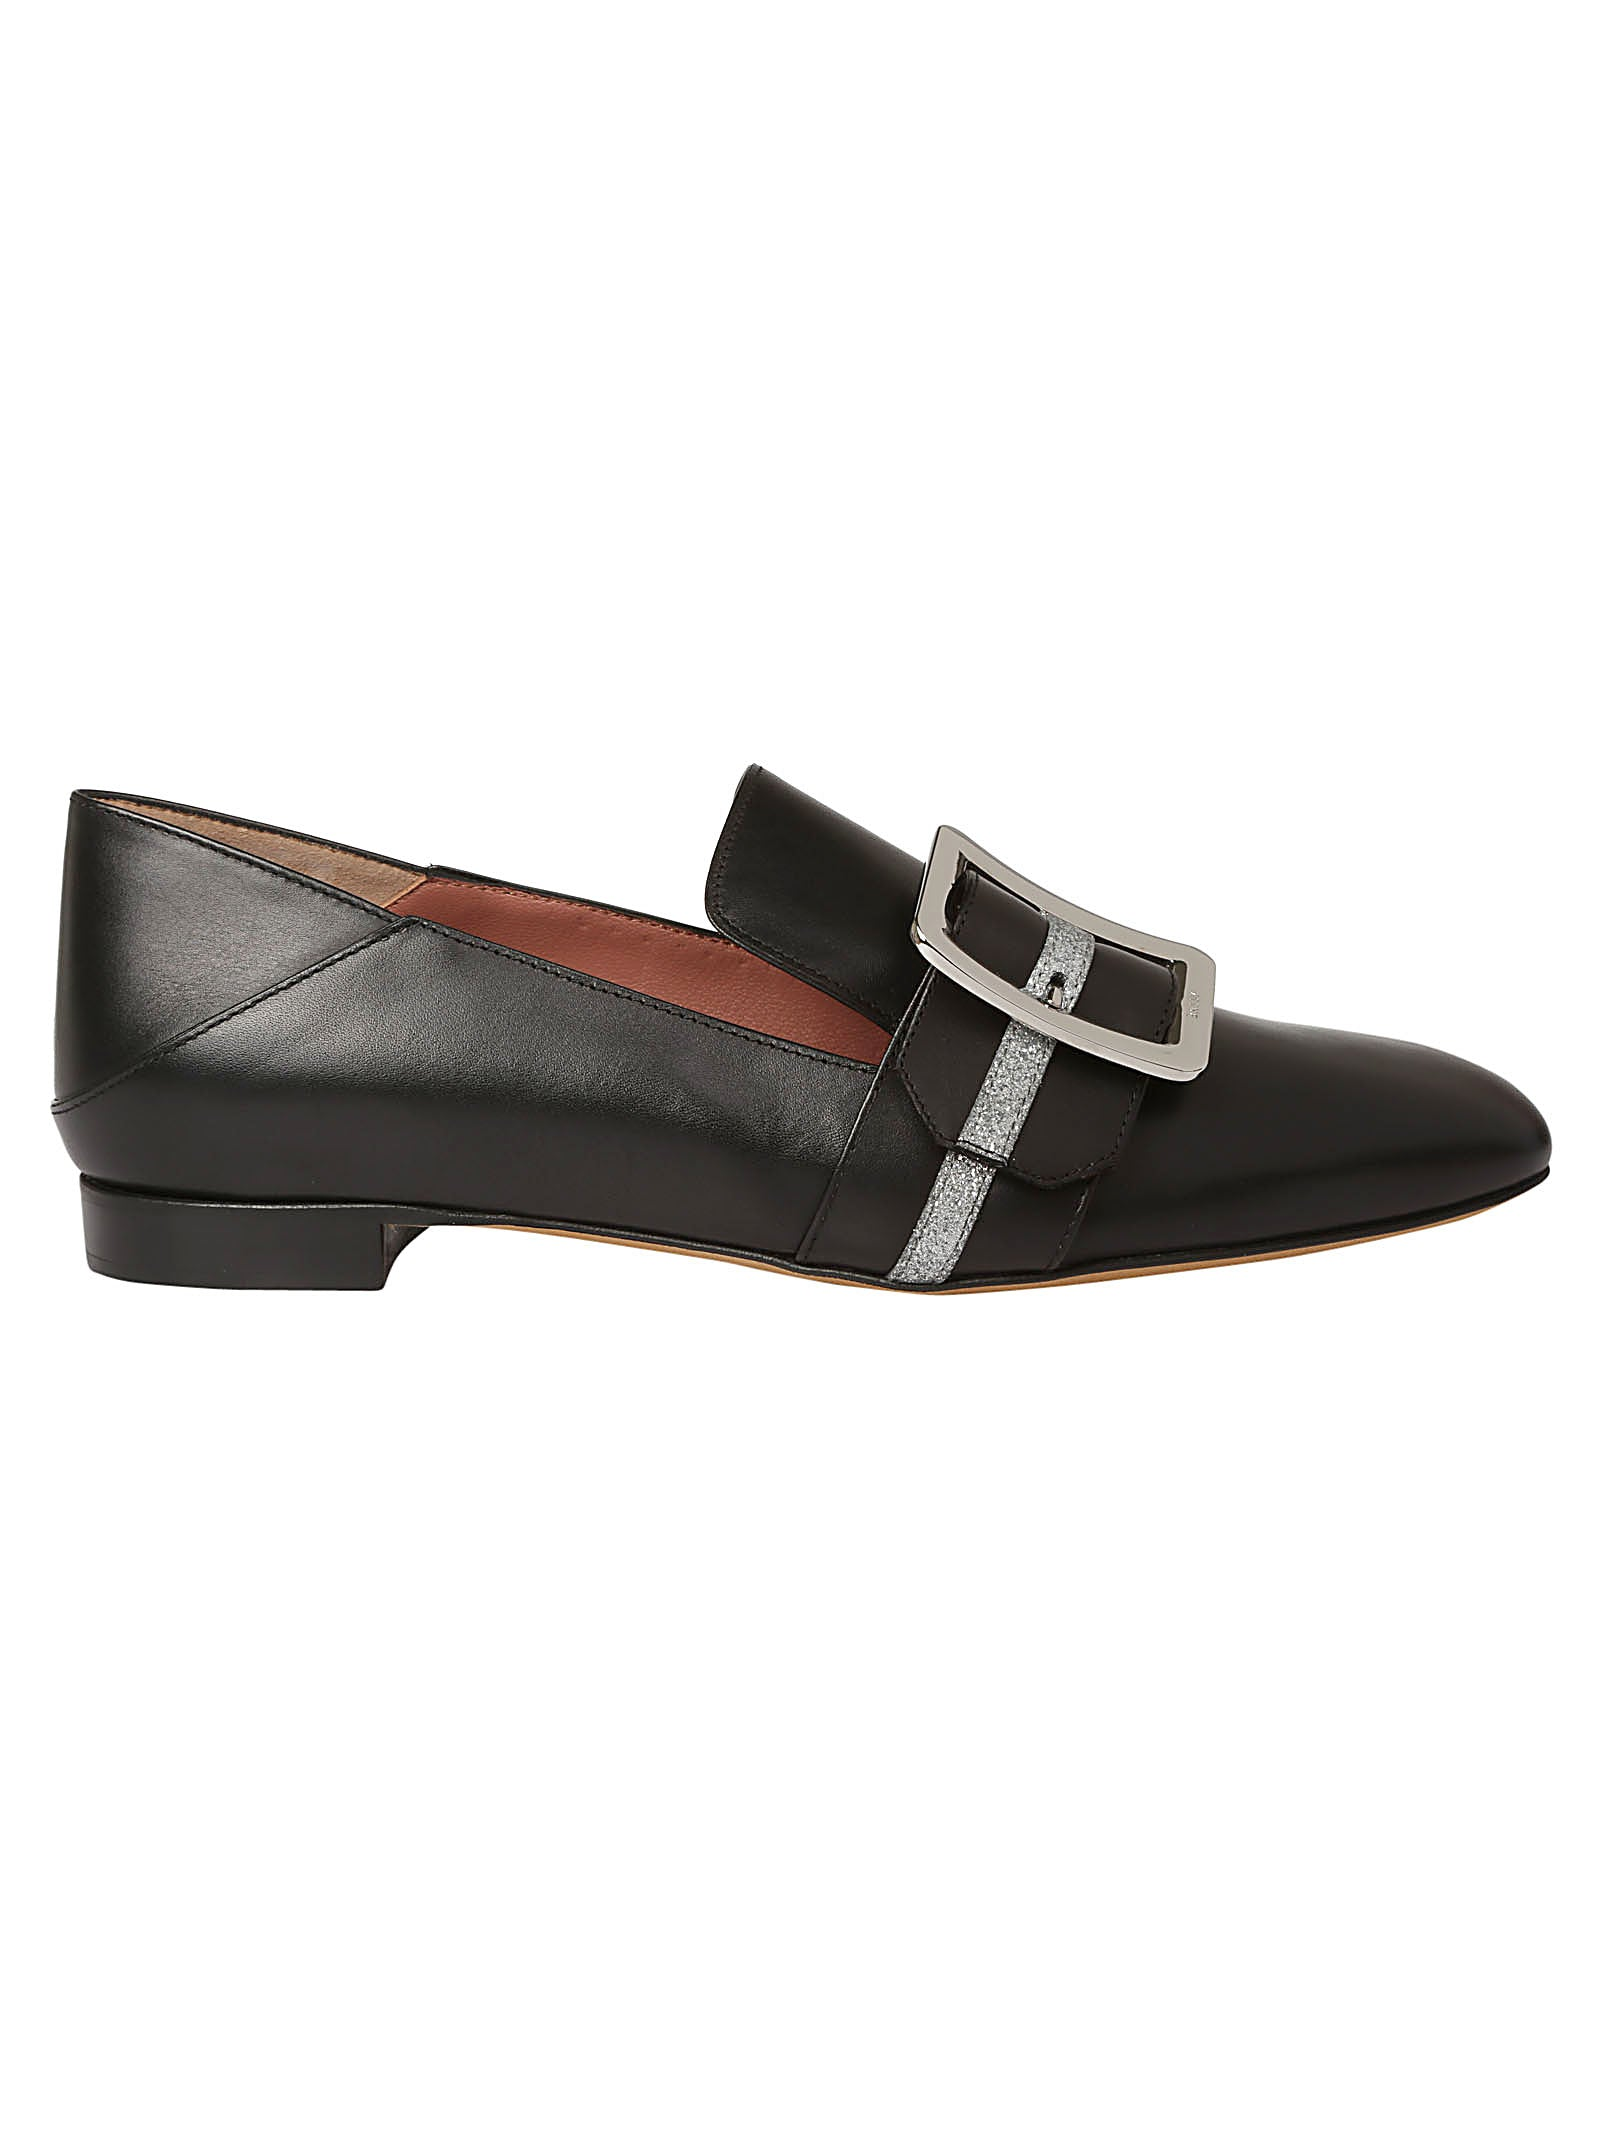 Bally Janelle Leather Loafers, Black